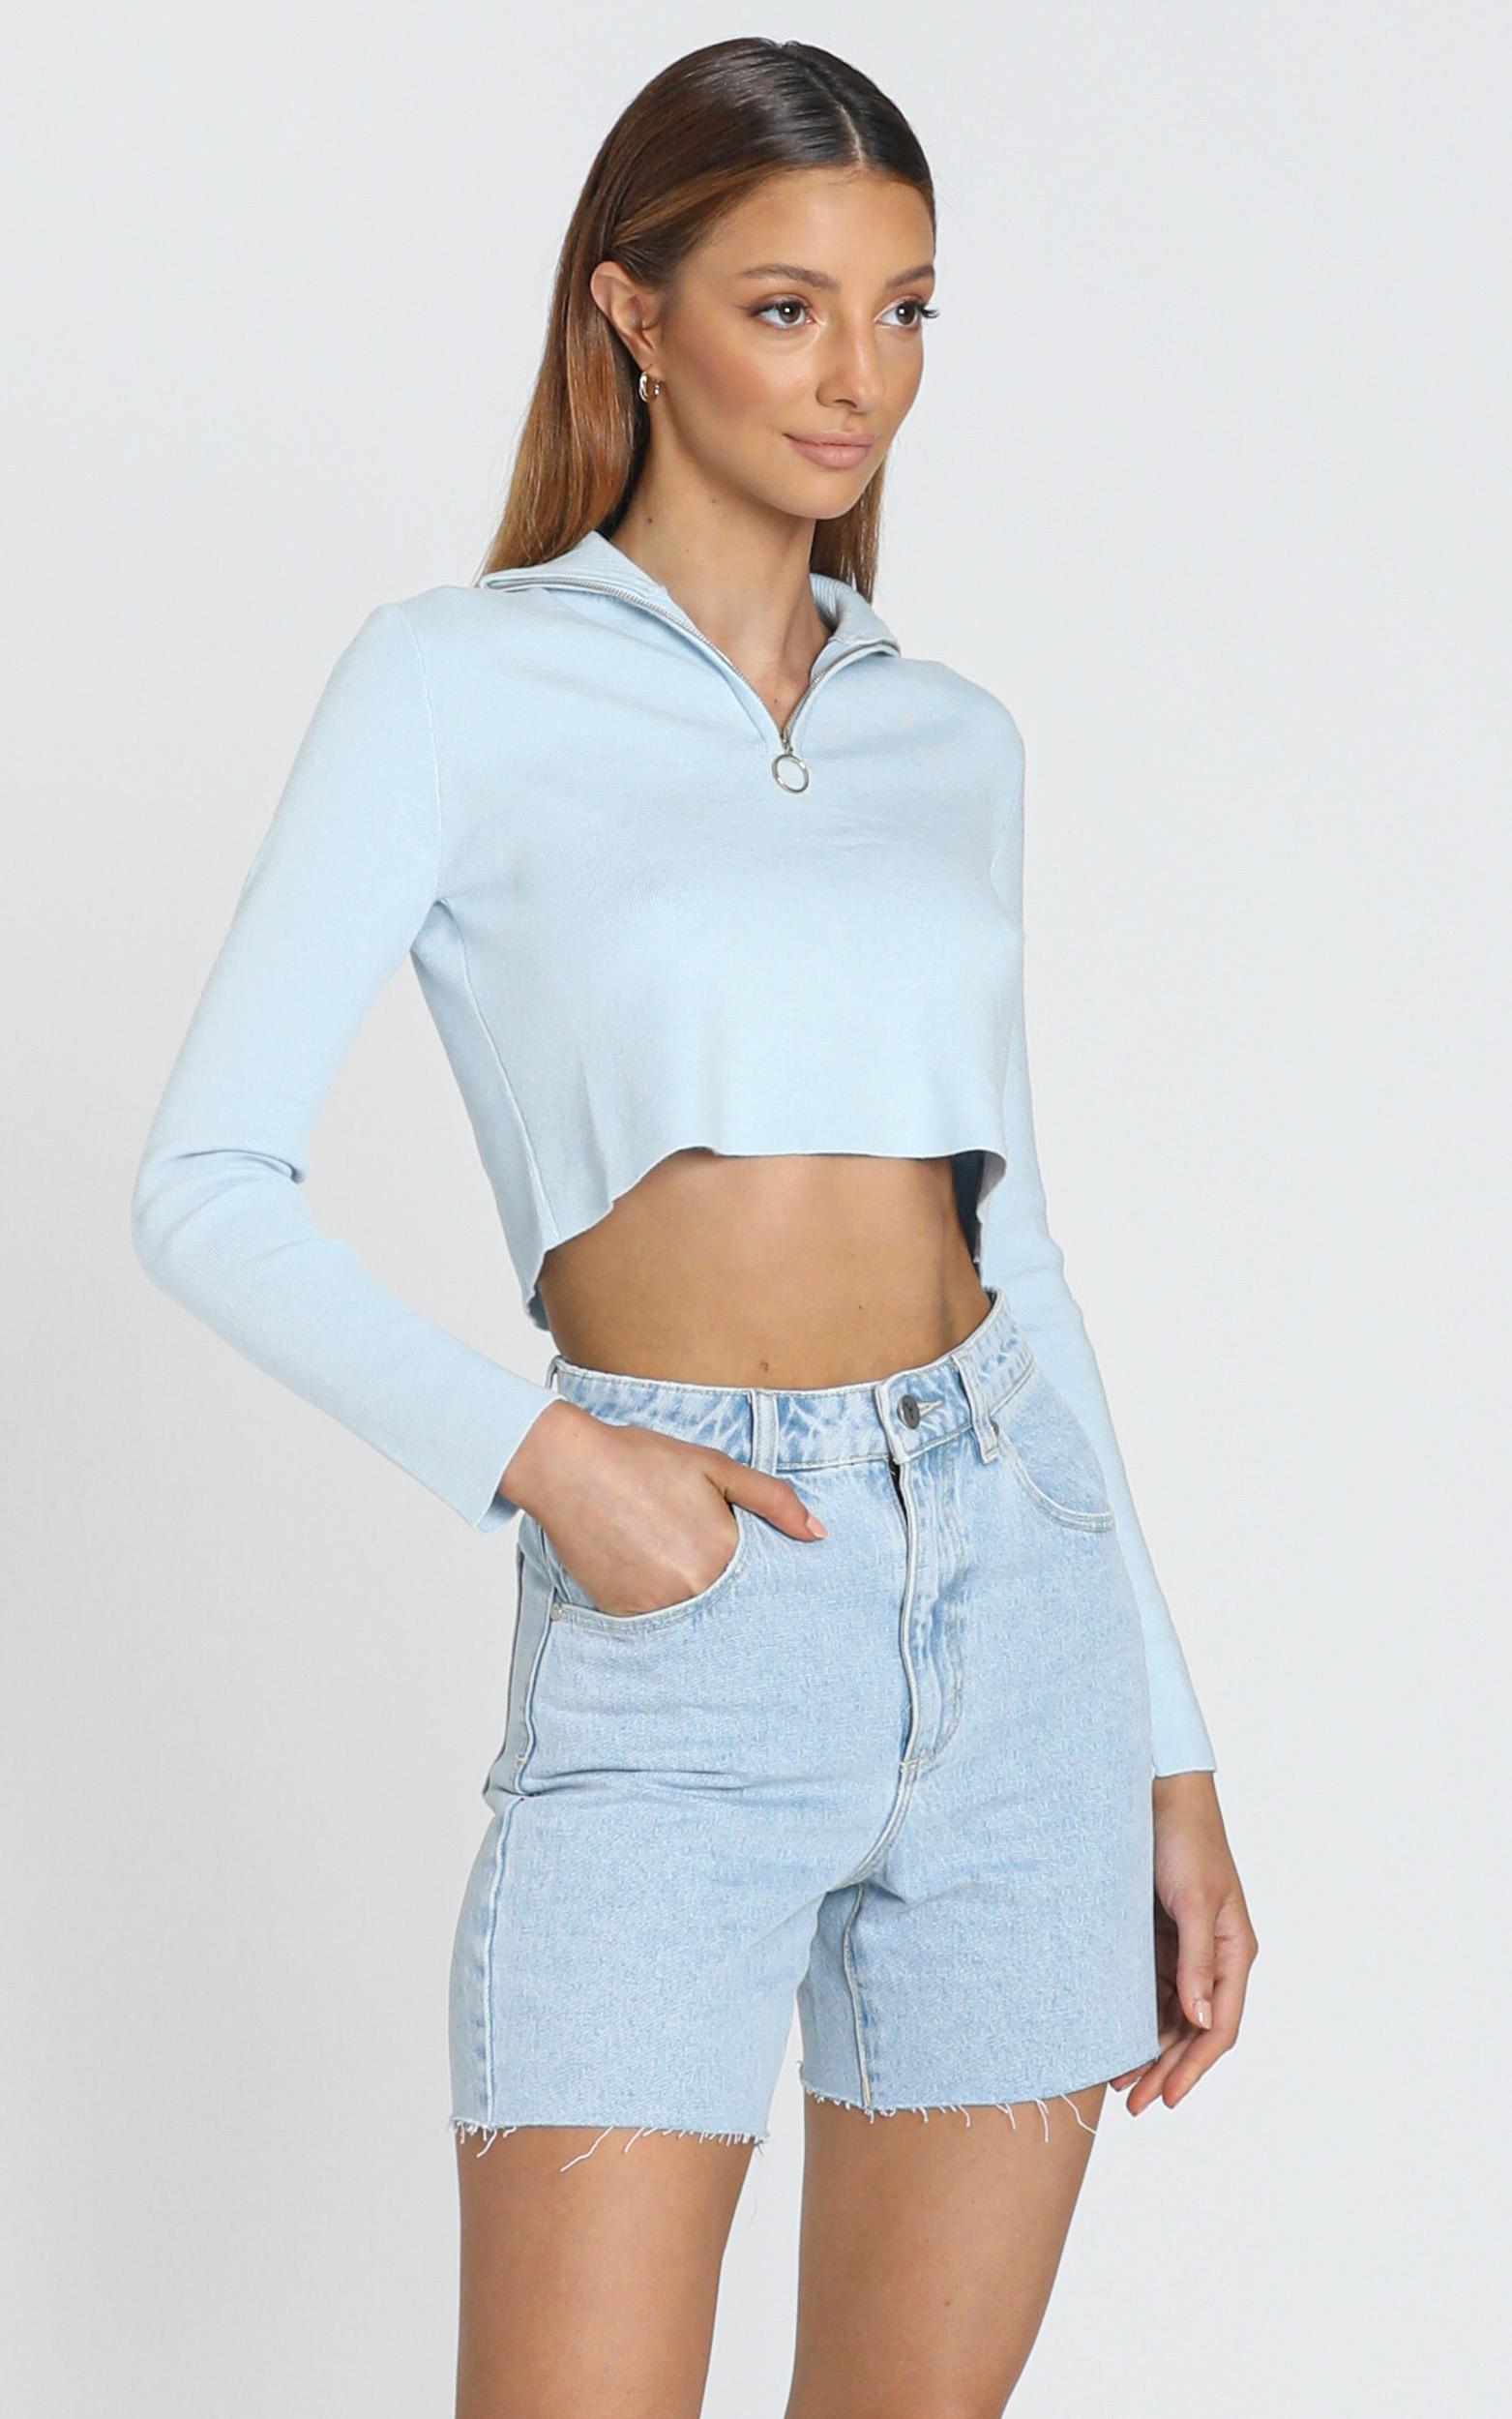 Tatiana Knit Top in Blue - XS/S, Blue, hi-res image number null